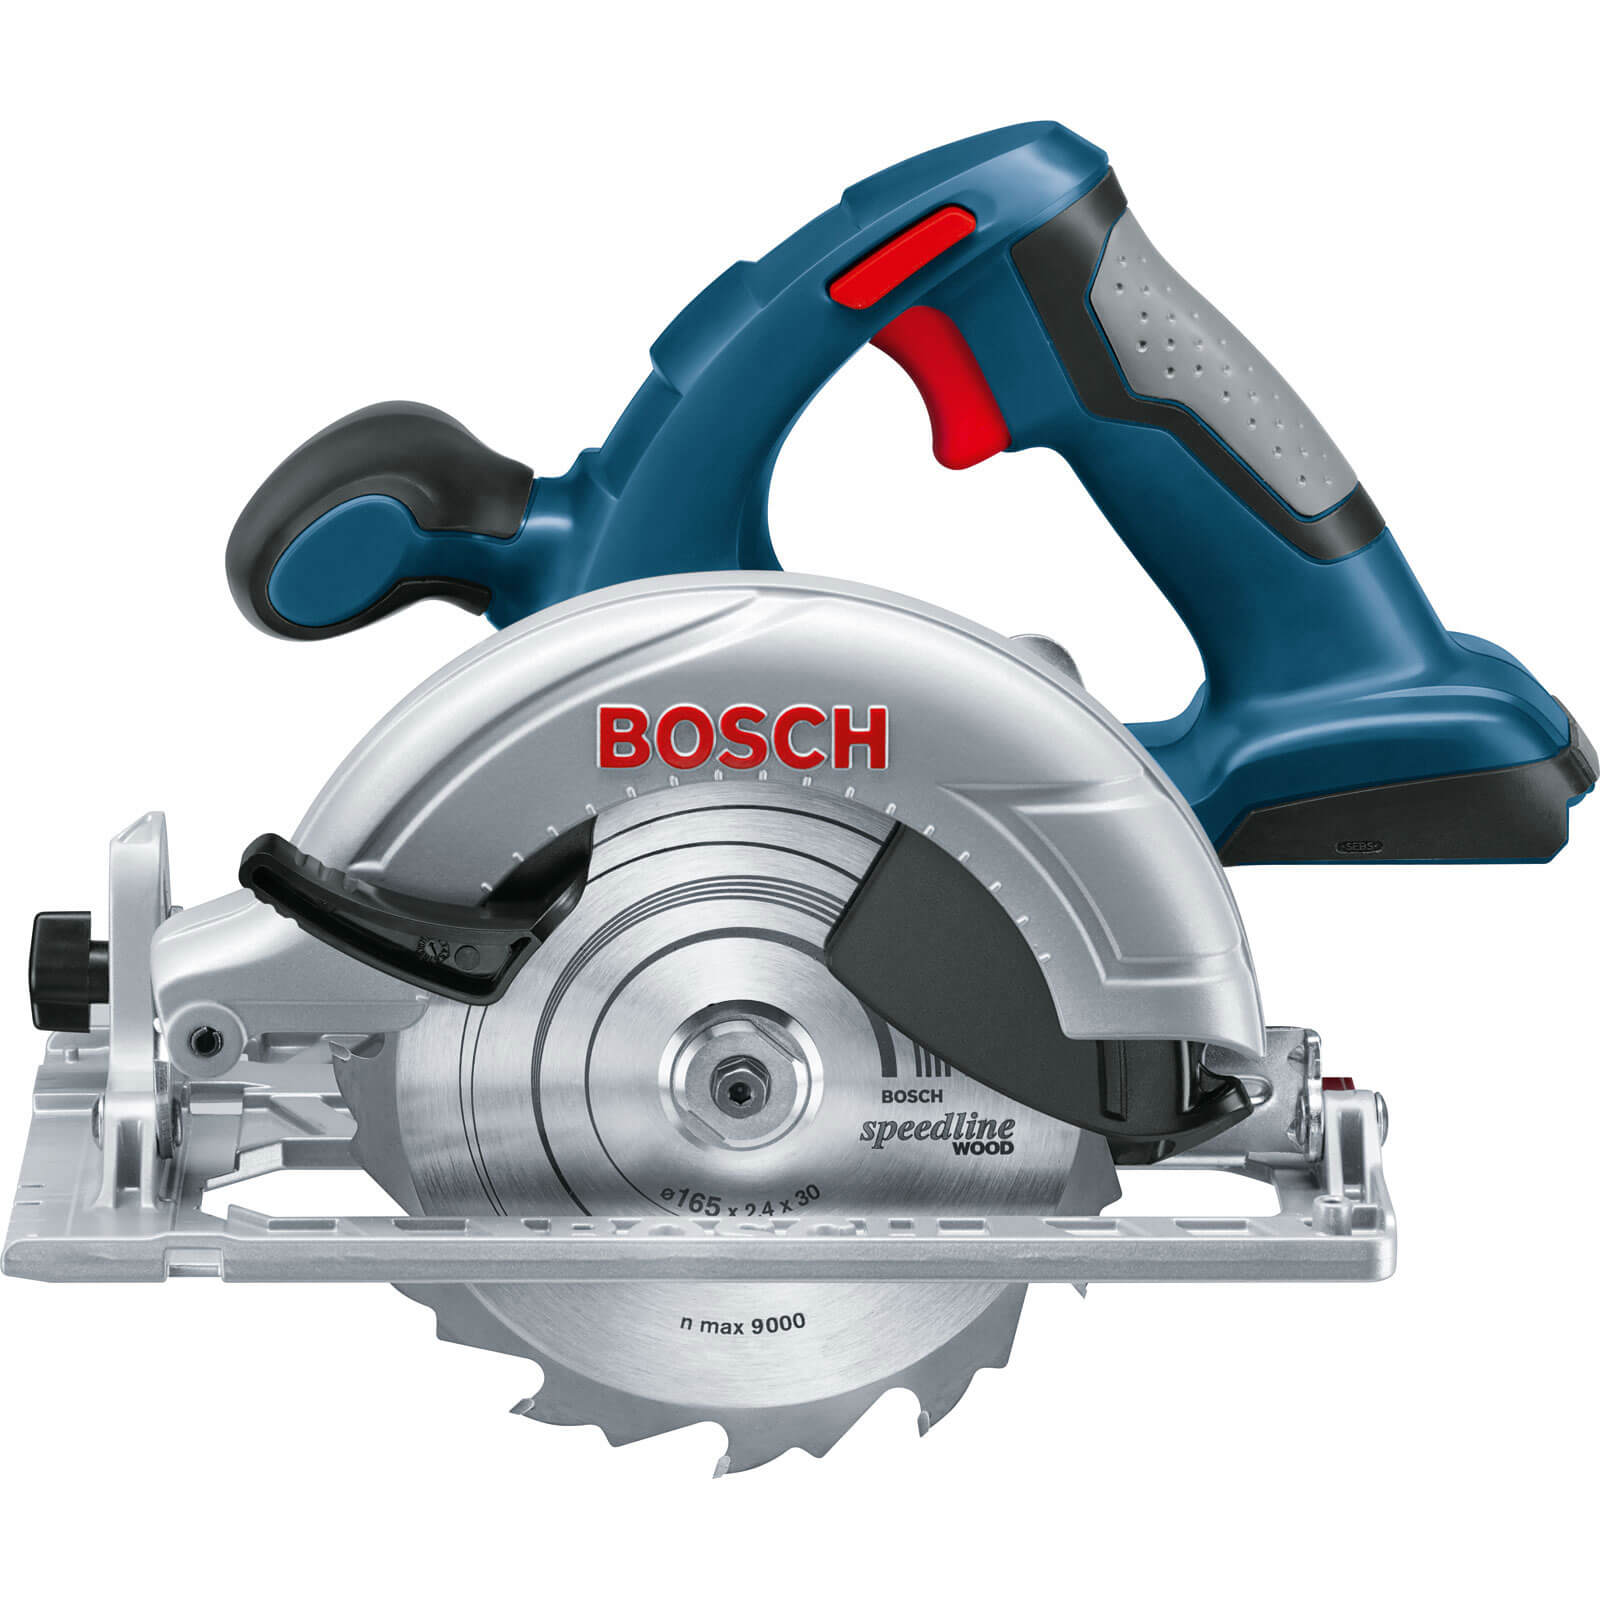 Bosch GKS 18 V-LI 18v Cordless Circular Saw 165mm Blade without Battery or Charger